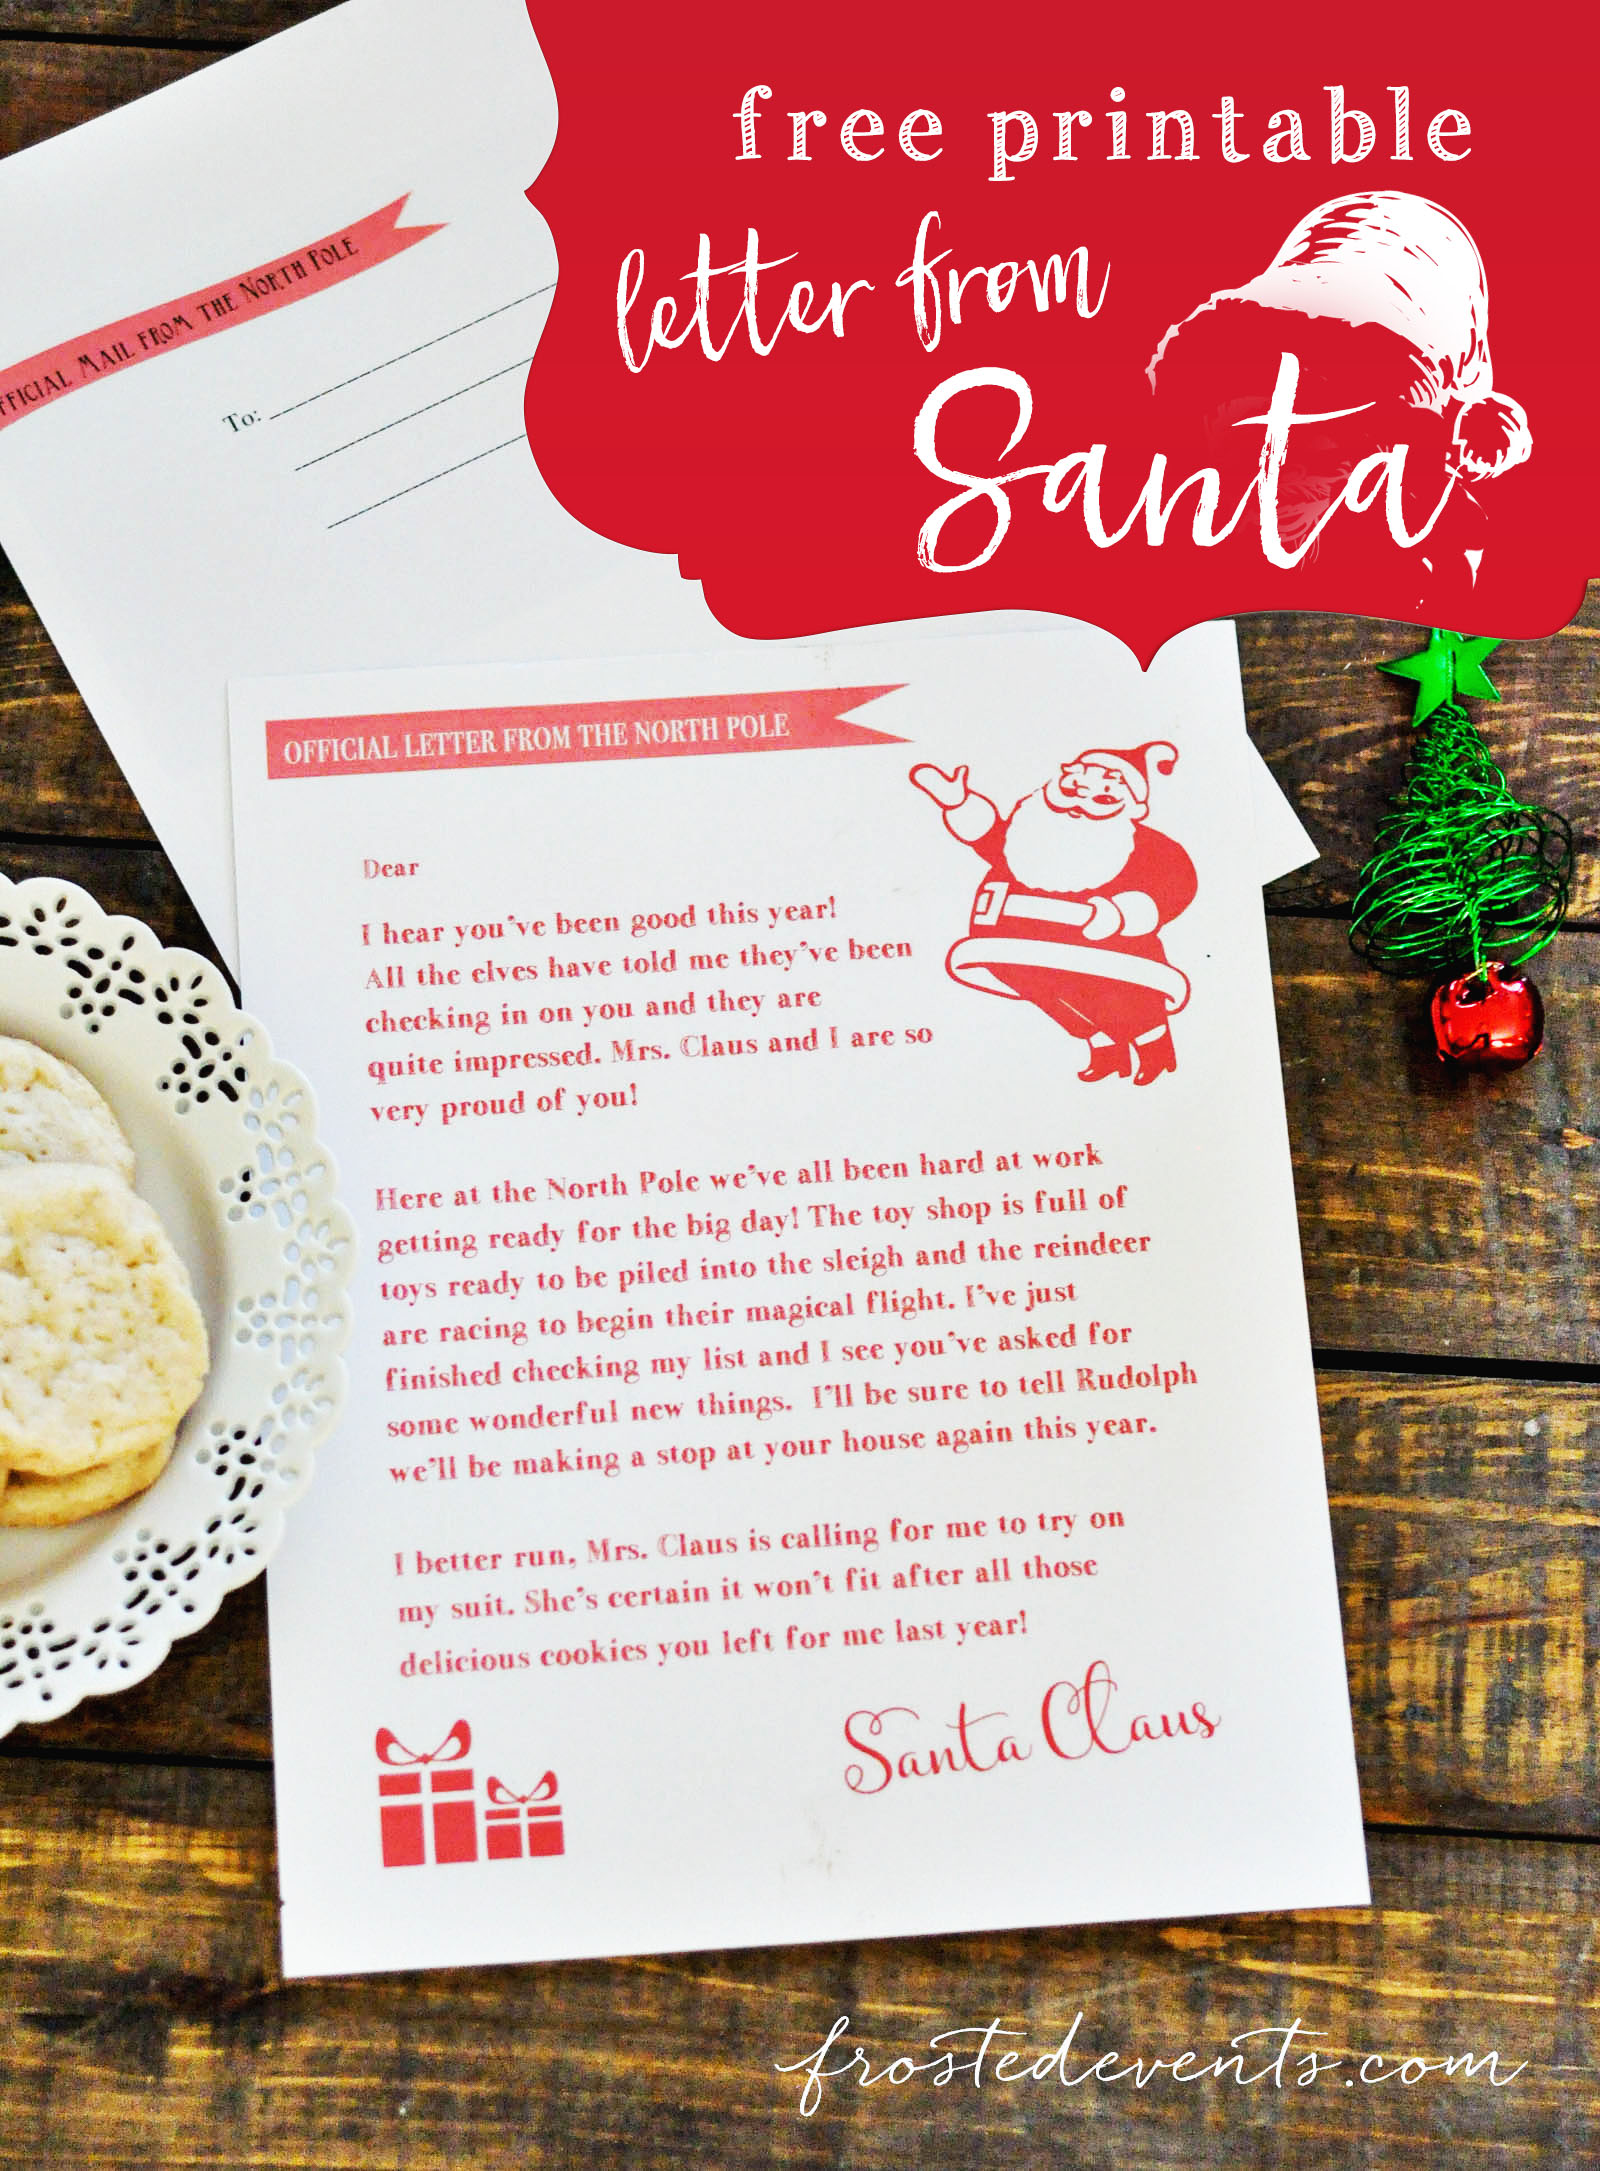 free letter from santa letter from santa free printable 21854 | free printable letter from santa editable santa letter frostedeventscom 011